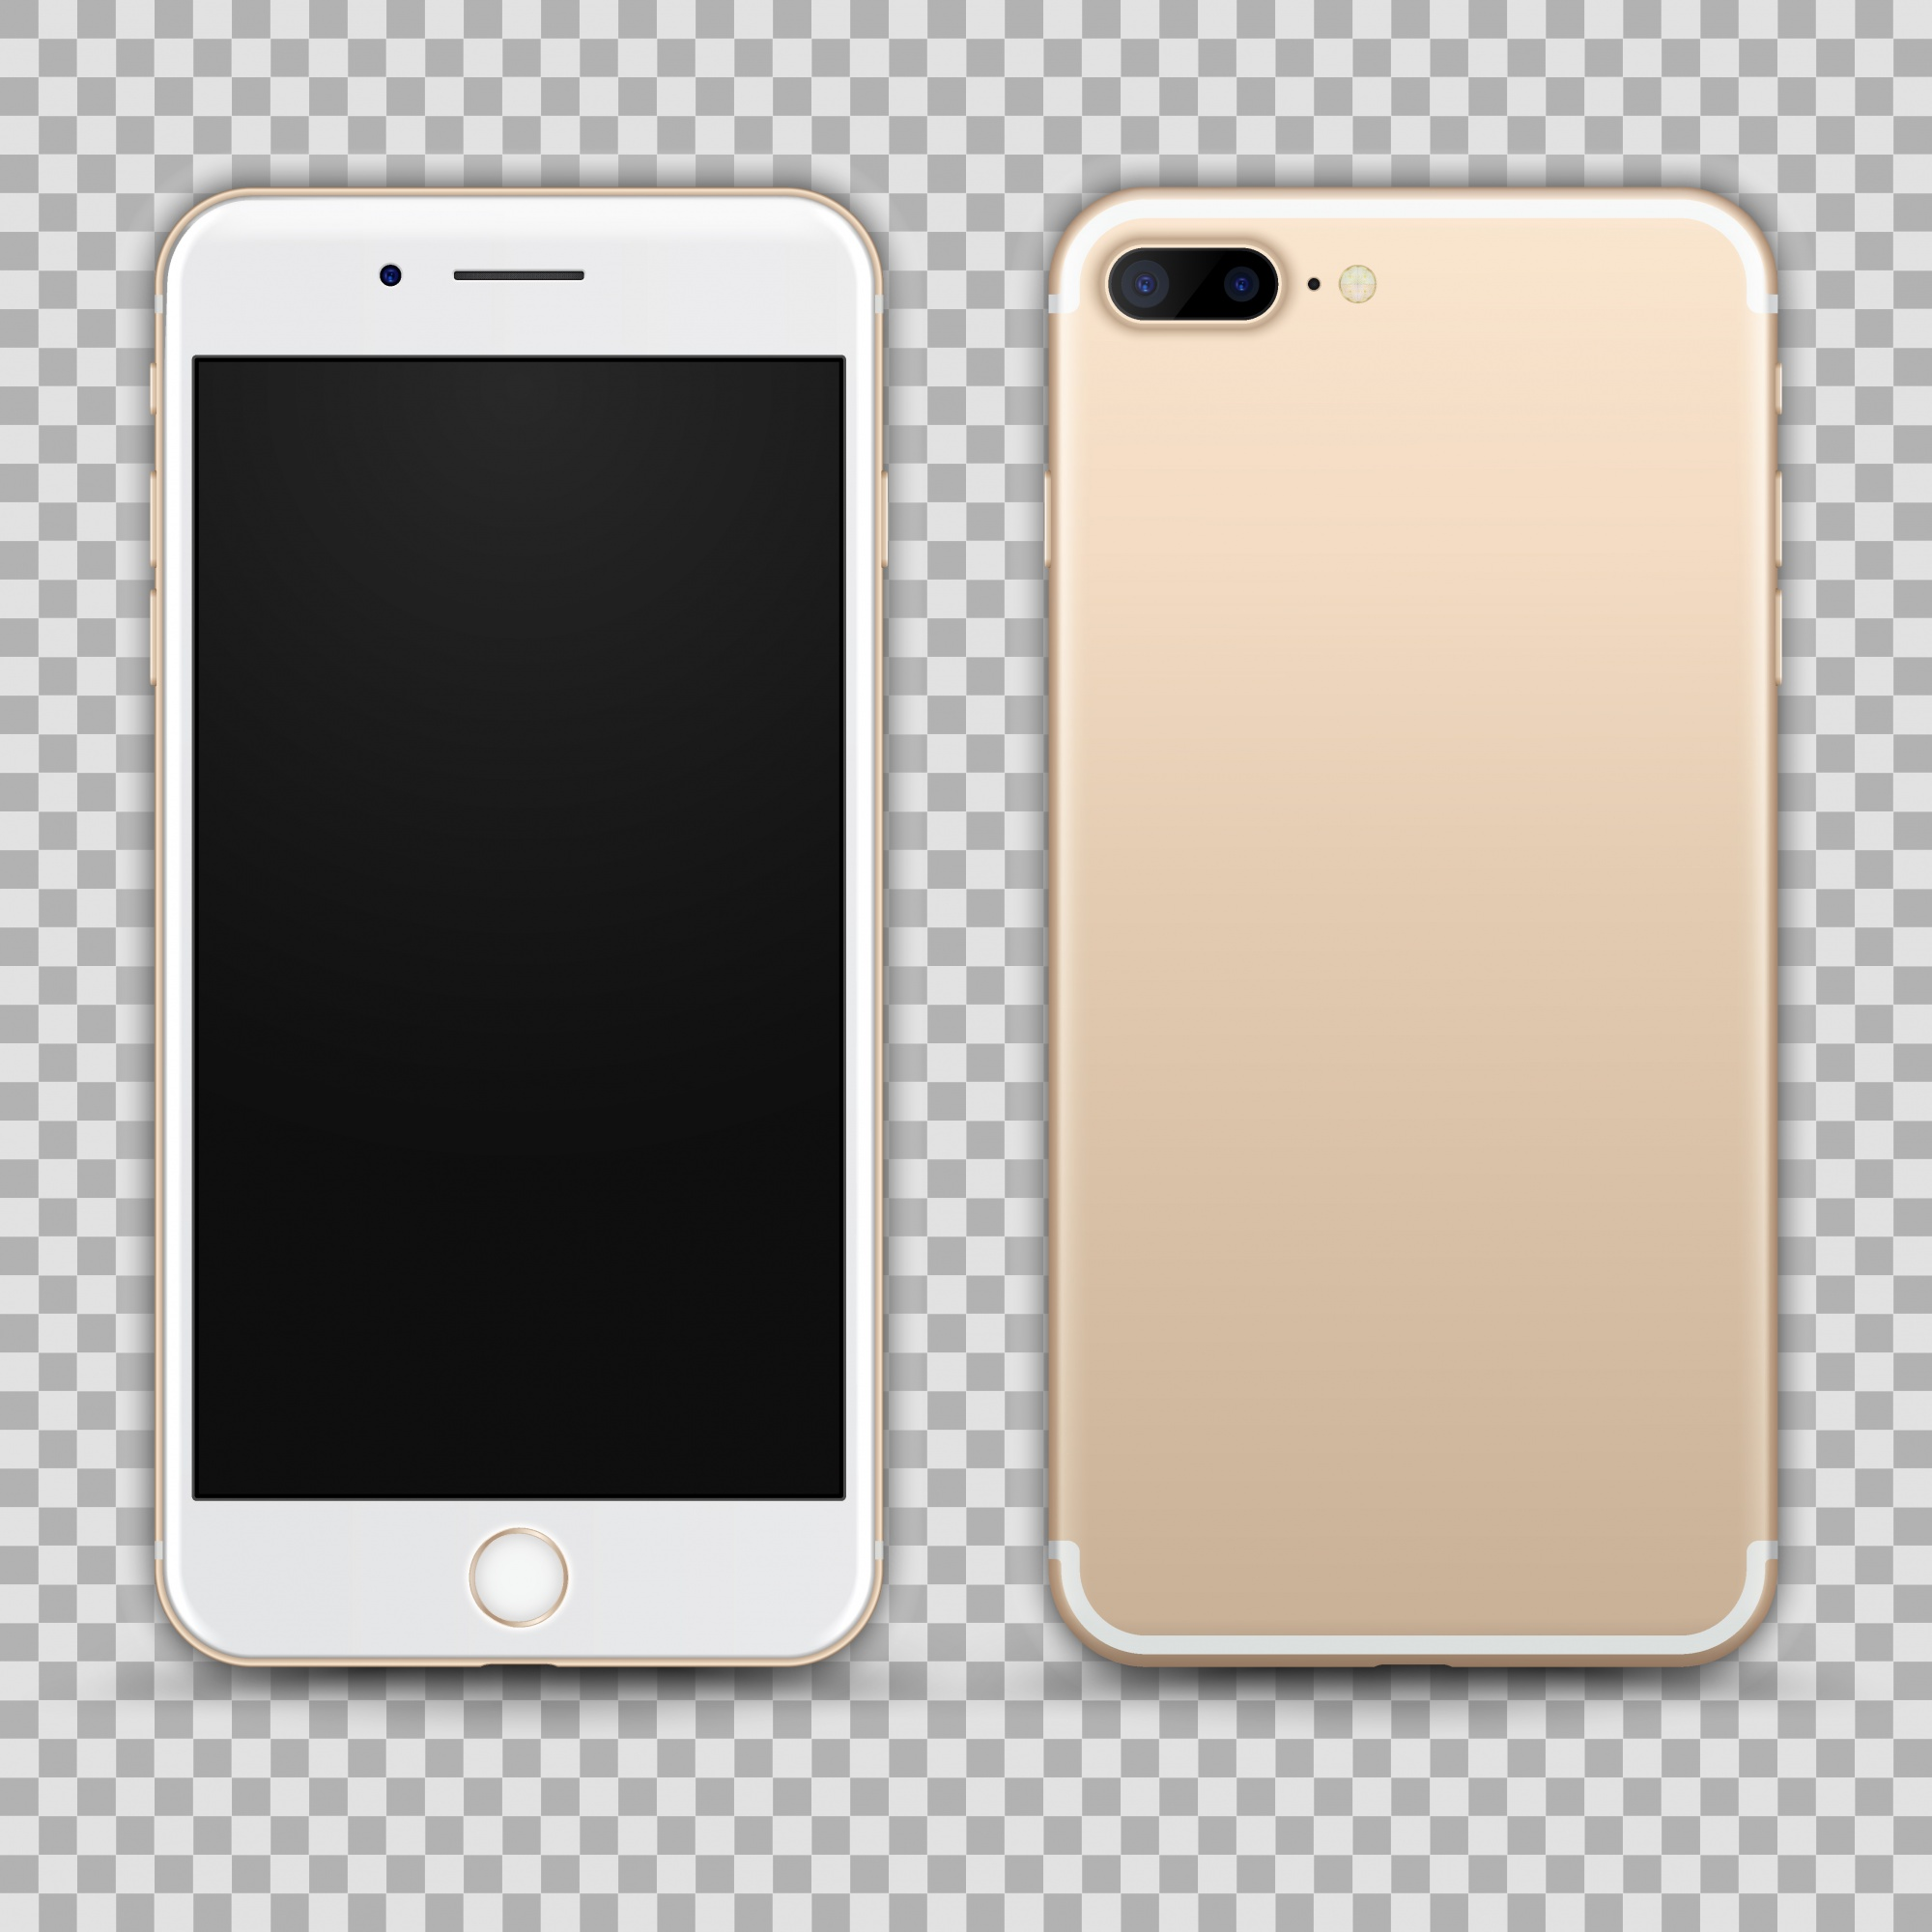 Realistic Gold Smartphone isolated on Transparent Background. Front and Back View